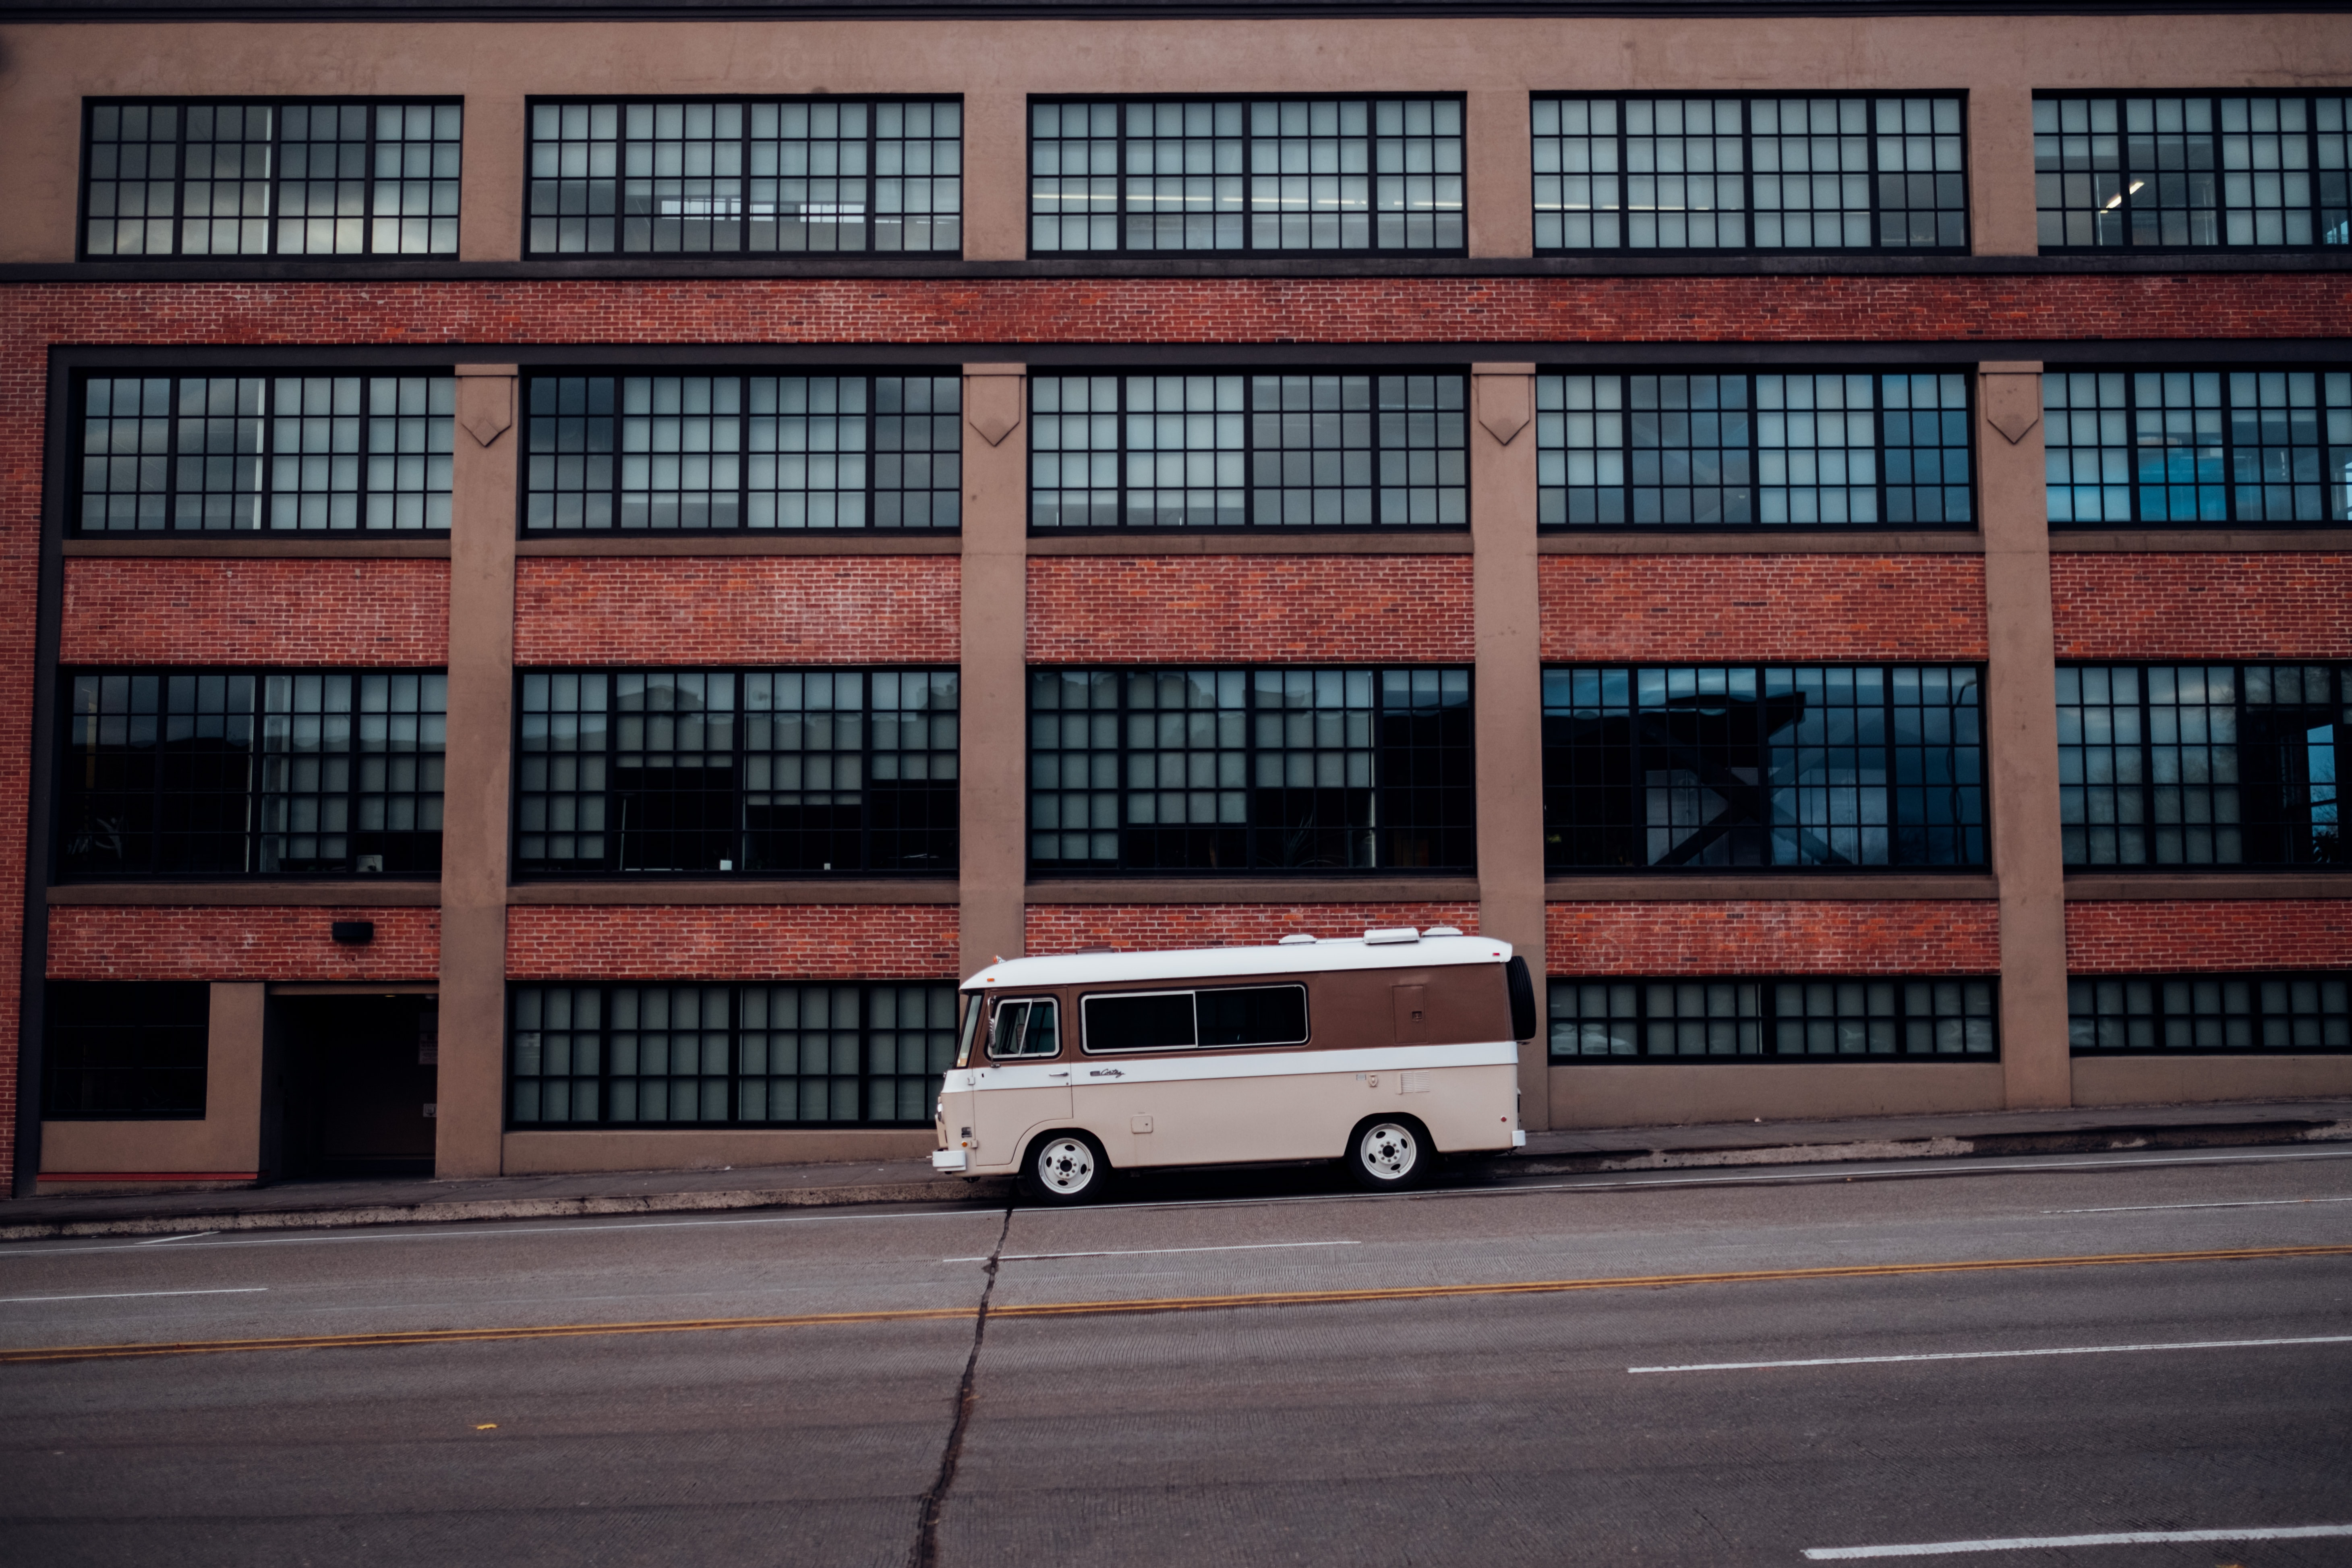 white and brown van in front of brown concrete building